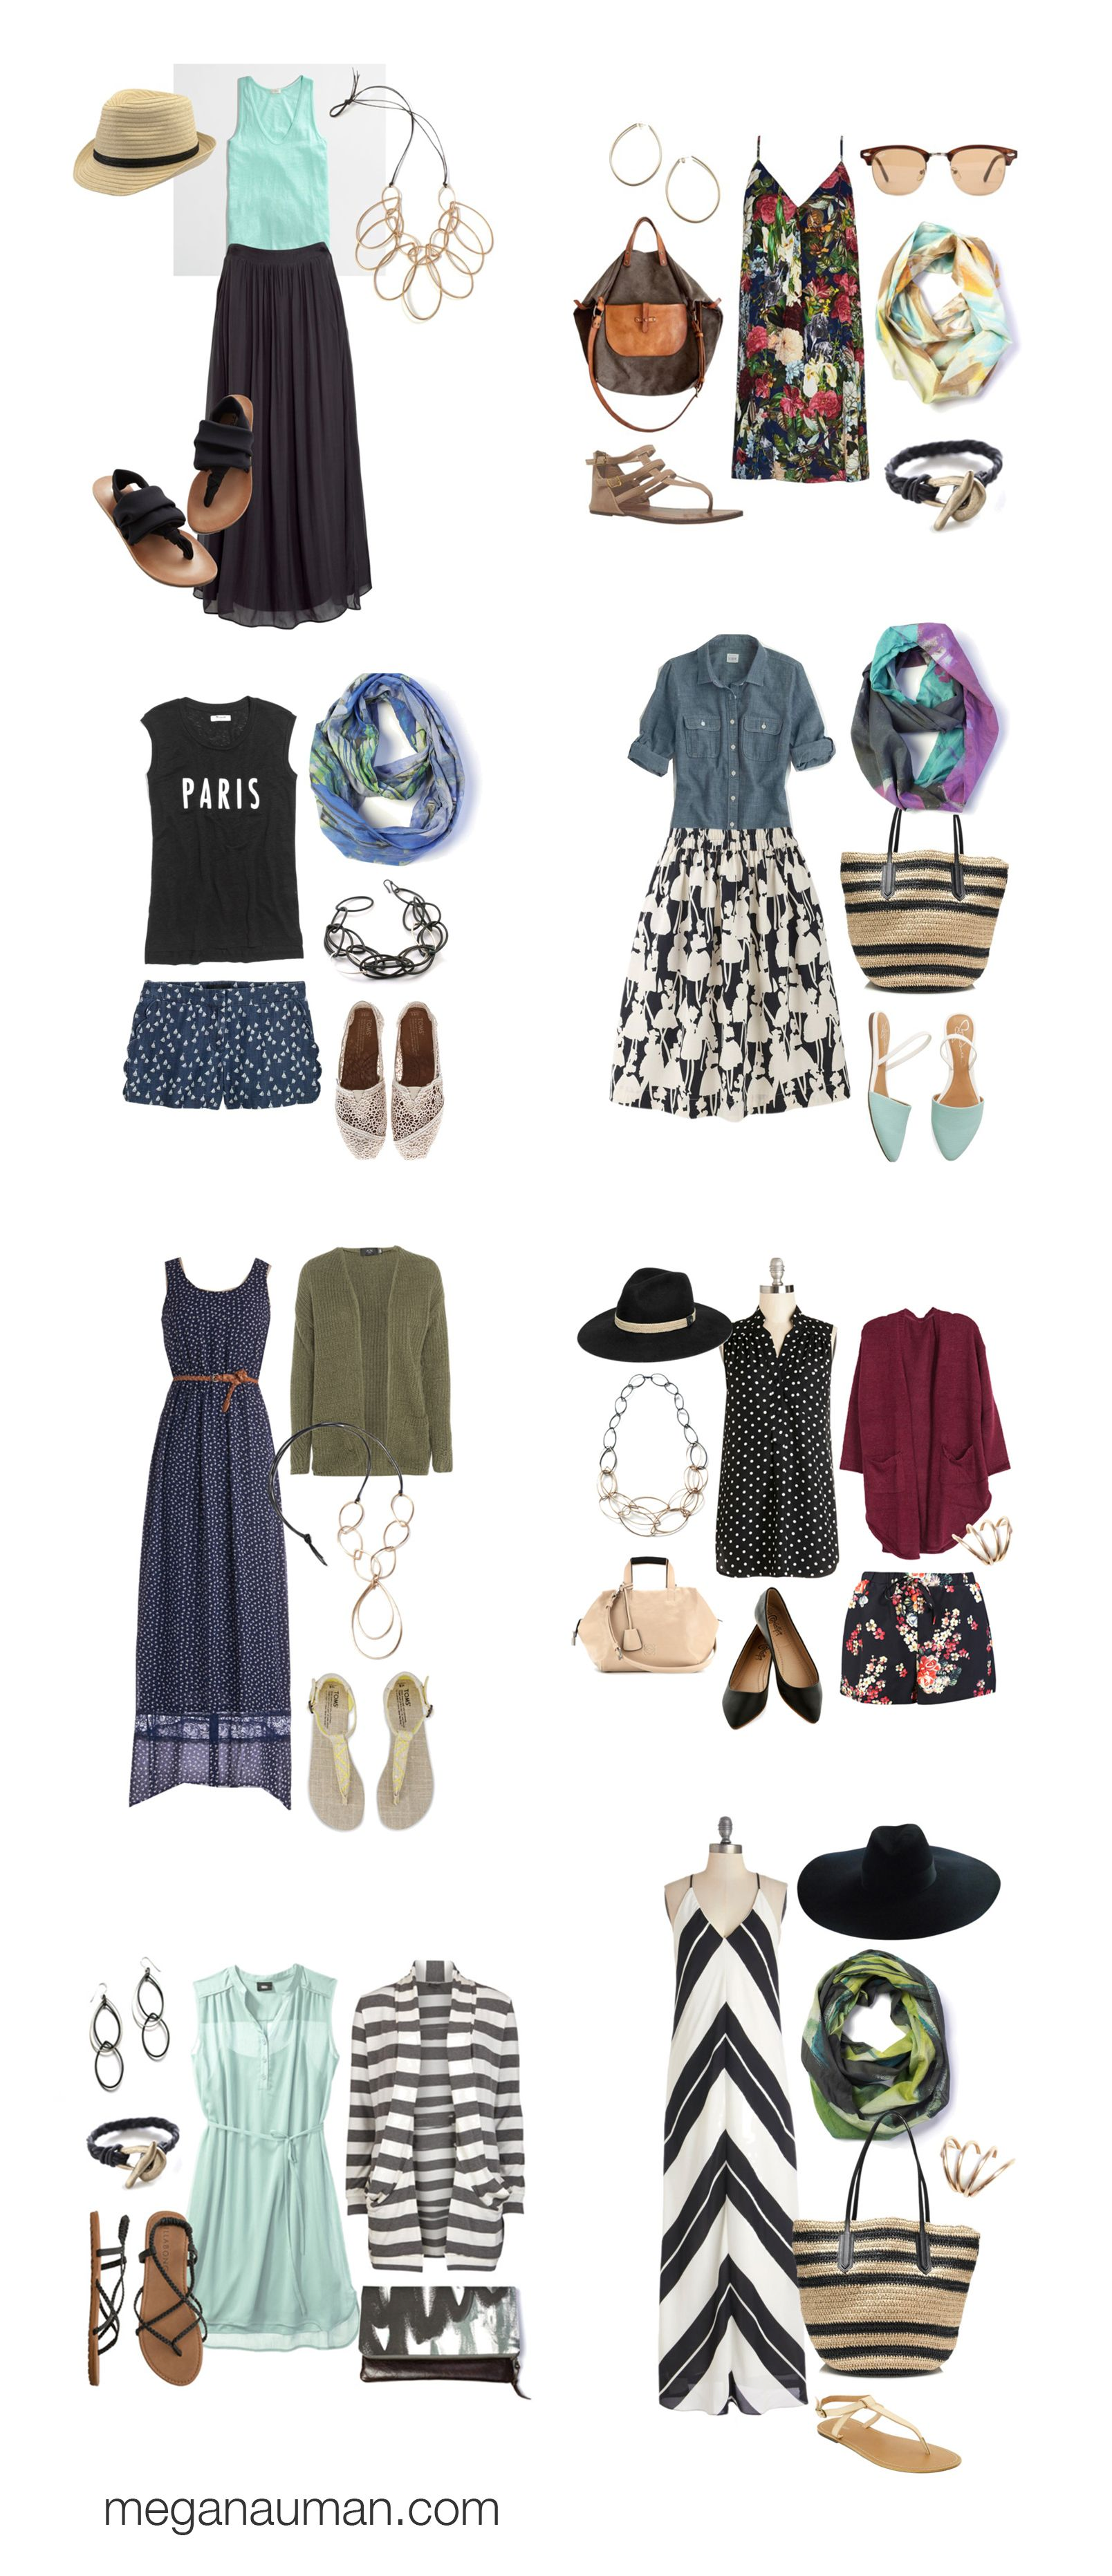 142b4370e02b what to wear to a summer picnic  8 outfit ideas to try    via megan auman